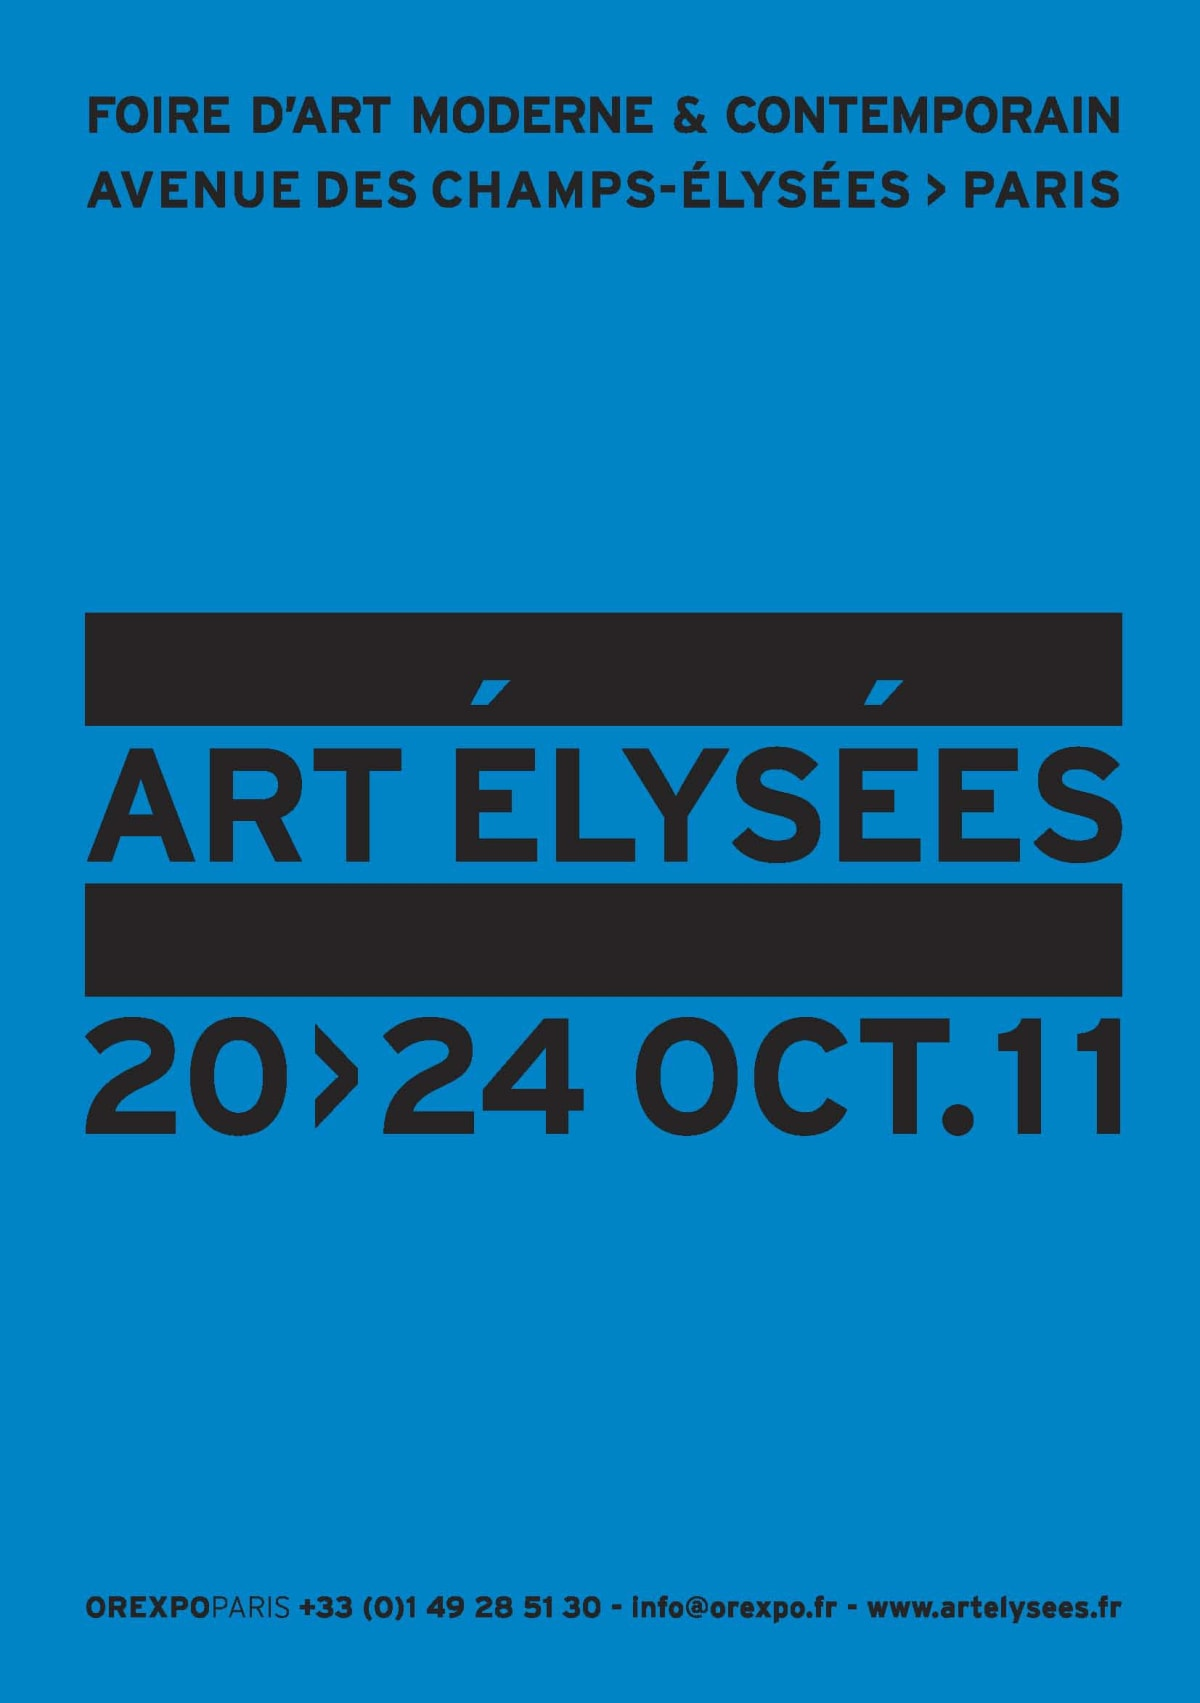 ART ELYSEES 2011